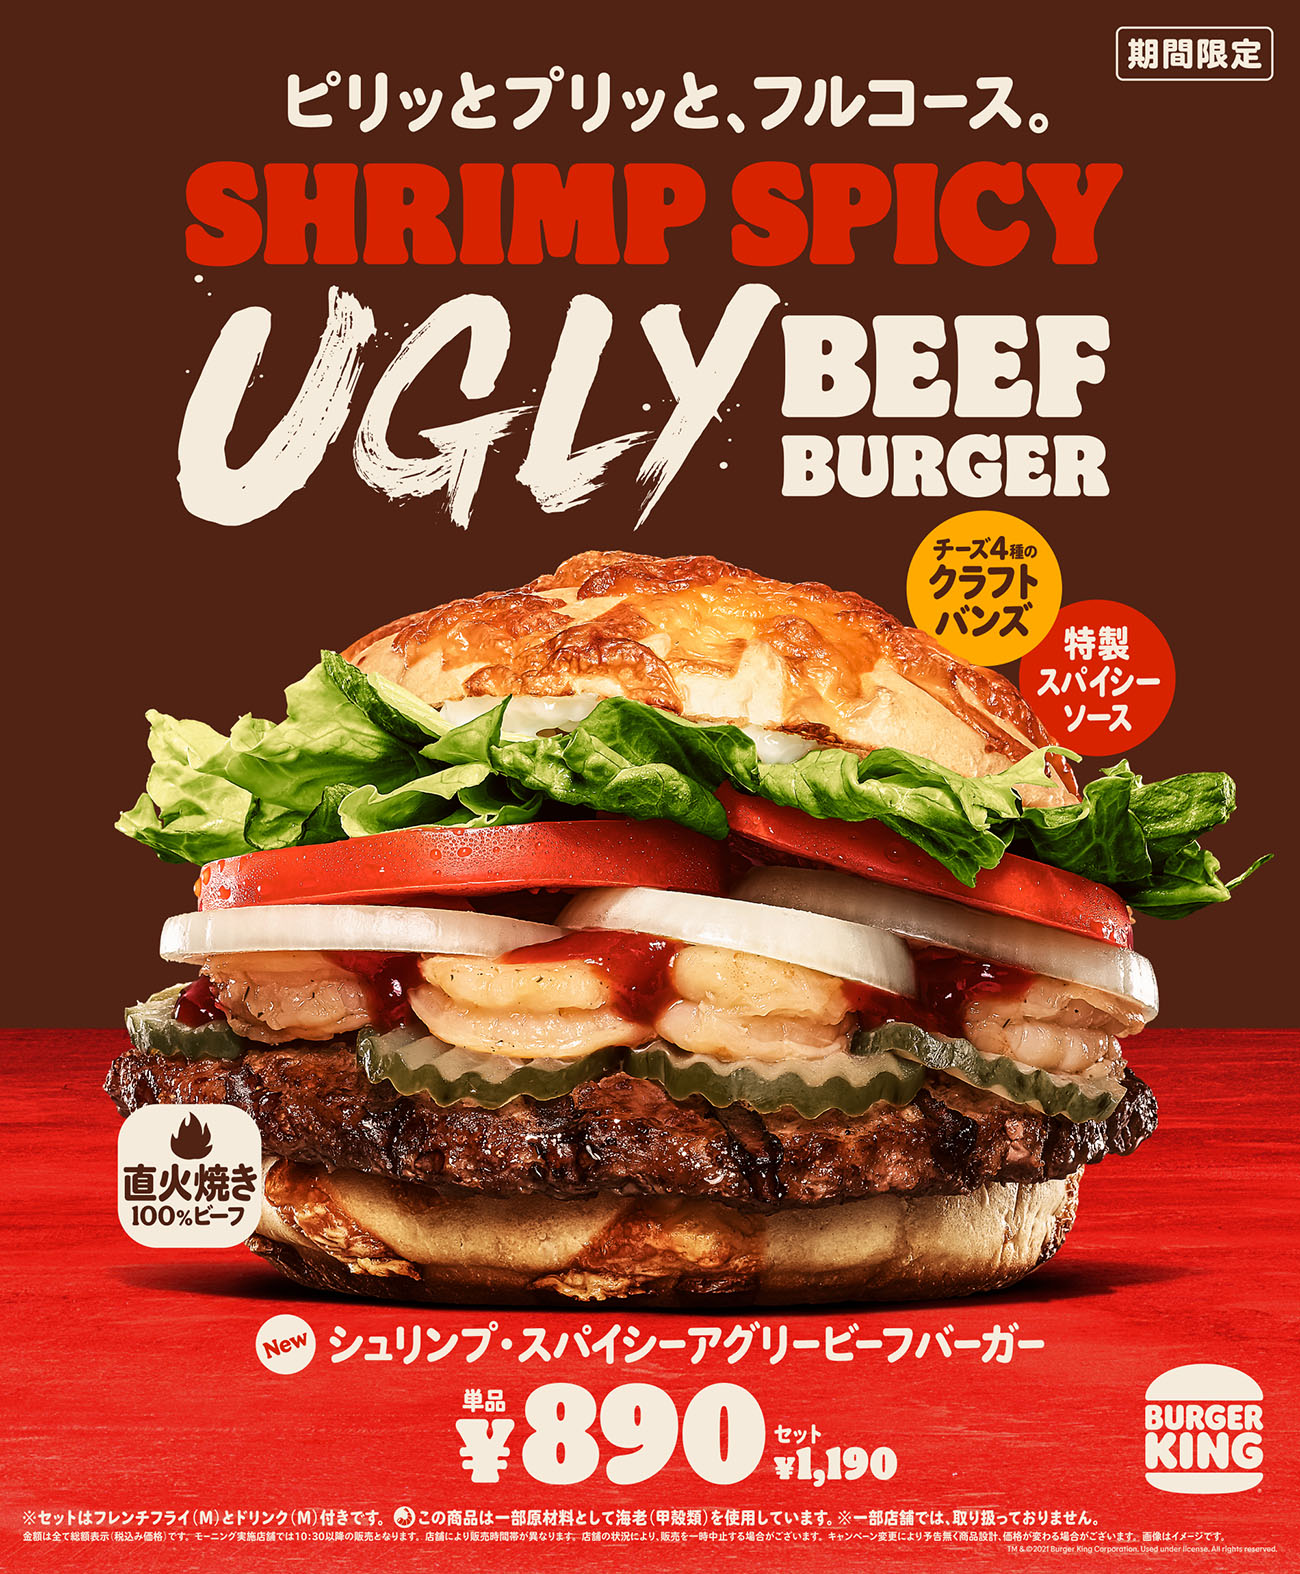 Burger King Japan - Shrimp Spicy Ugly Beef Burger